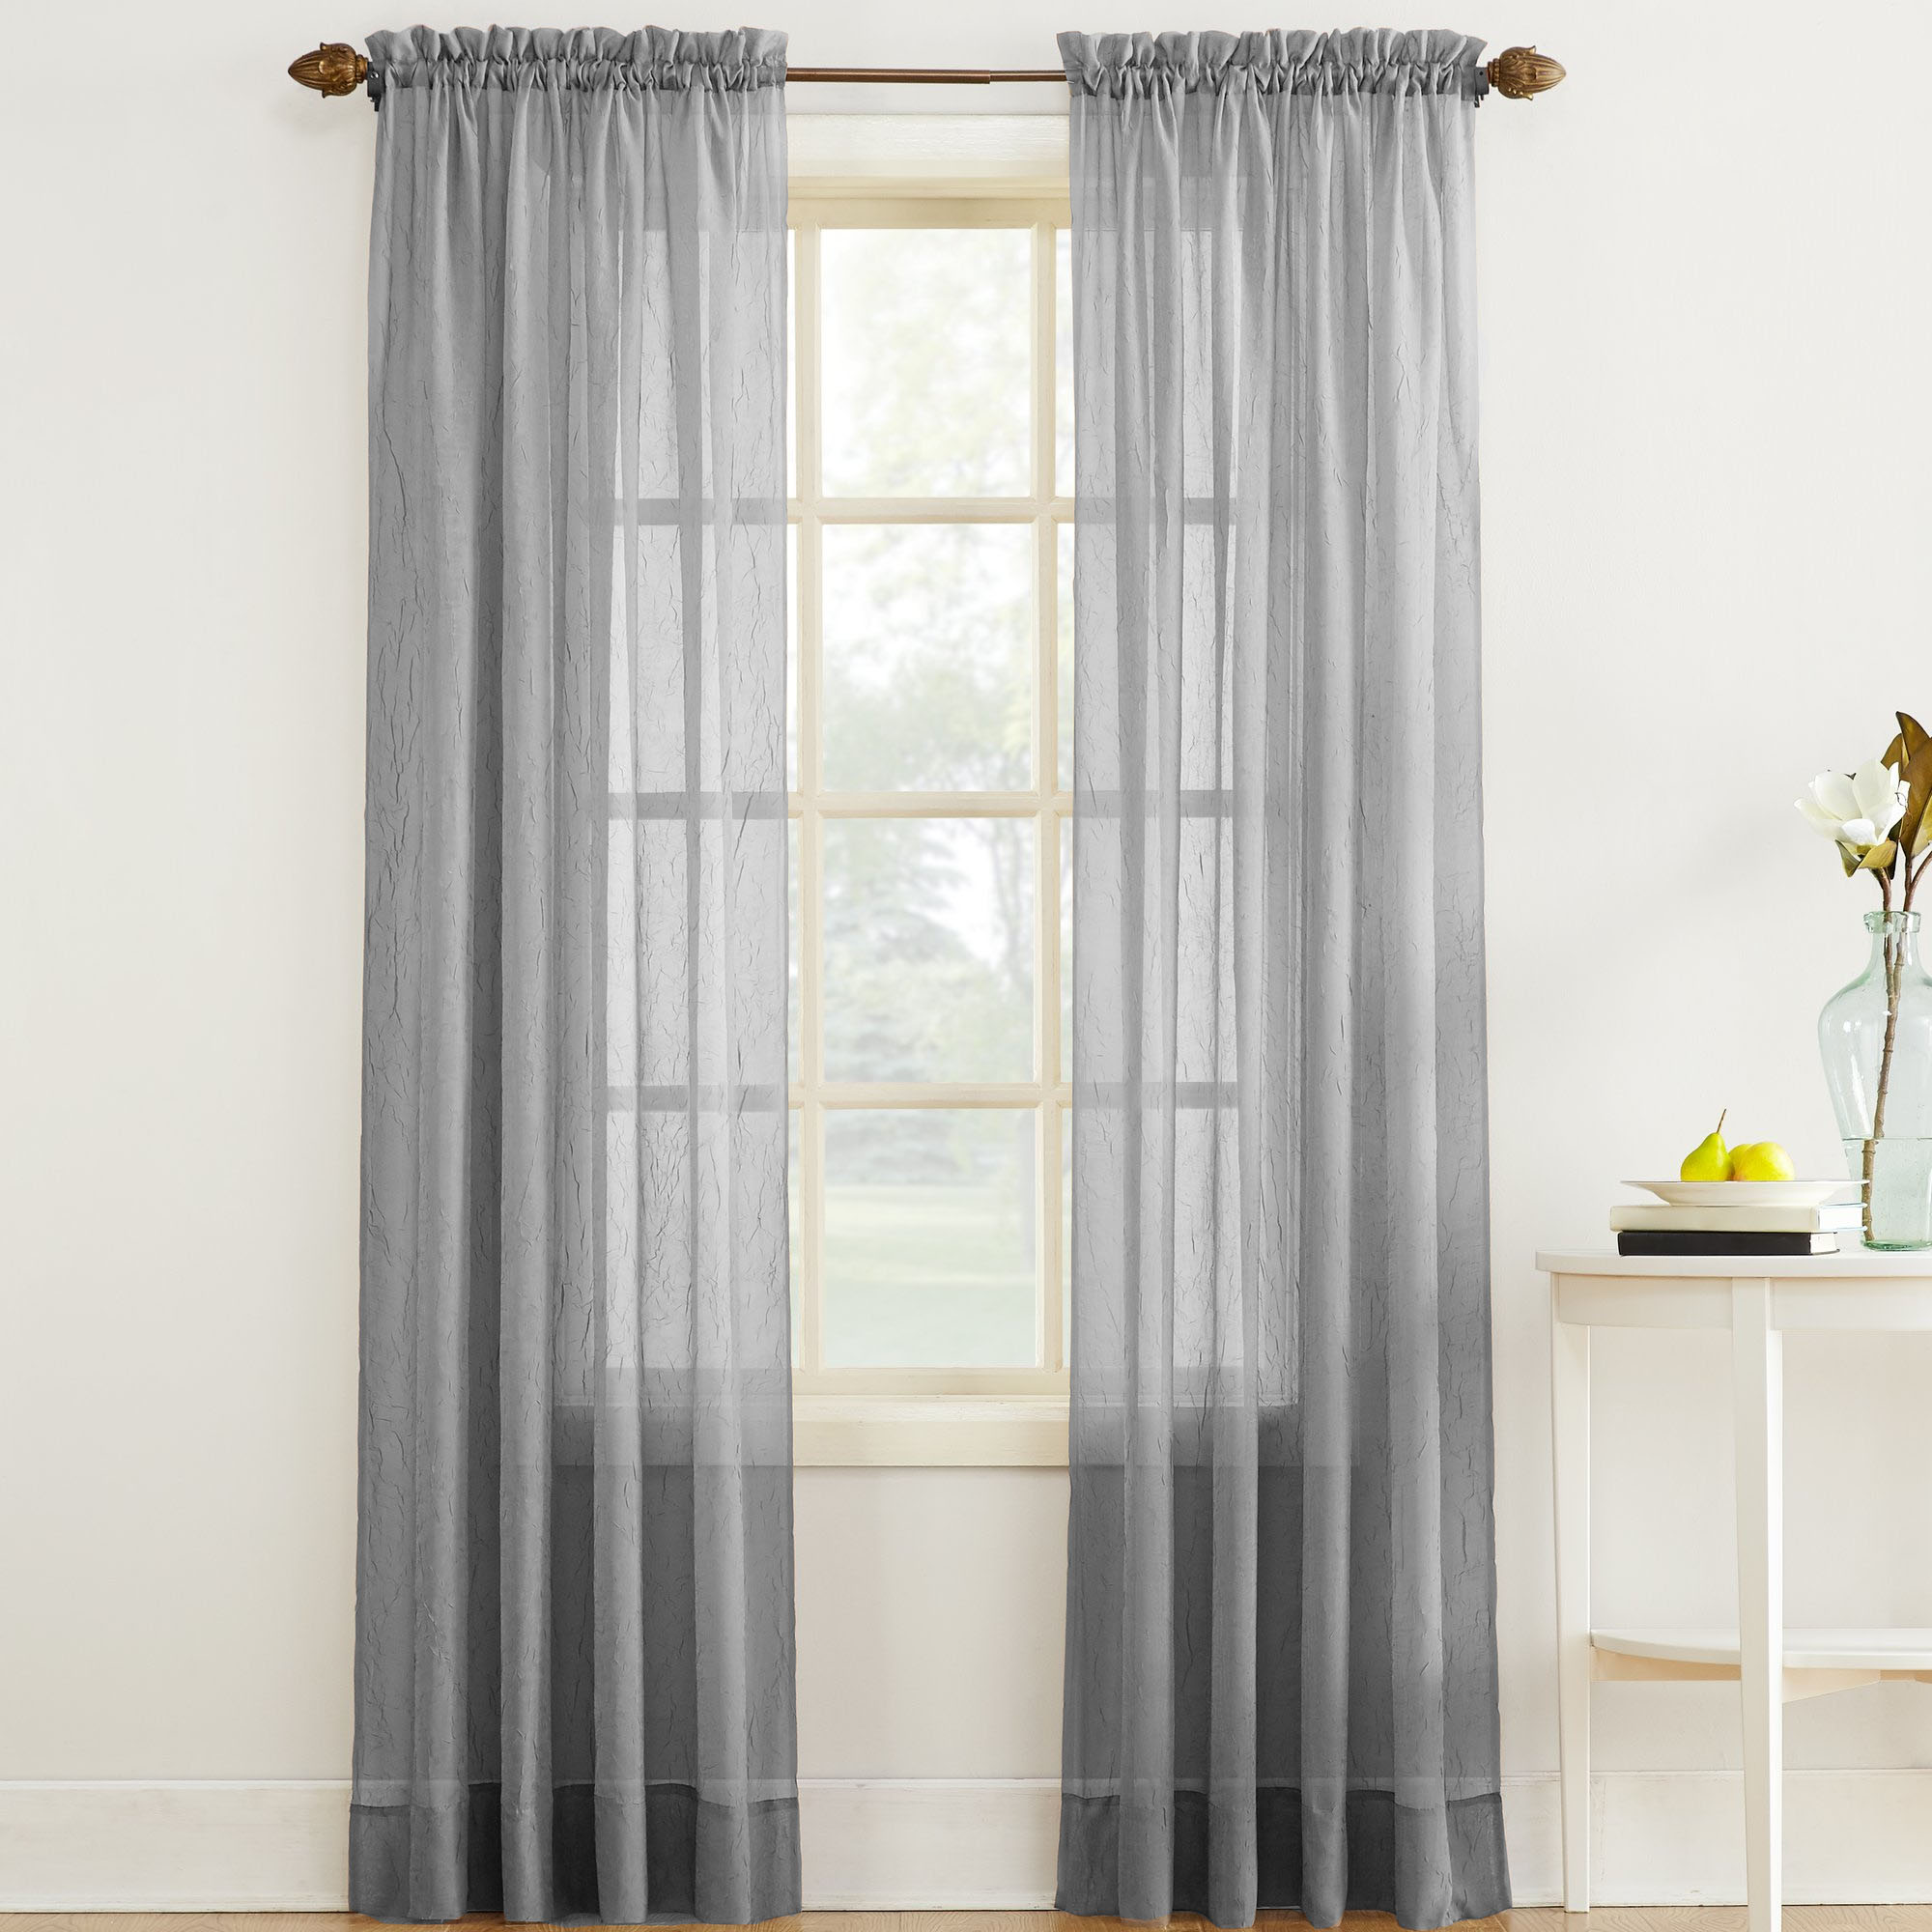 Erica Crushed Sheer Voile Curtain Panel In Gray Altmeyer